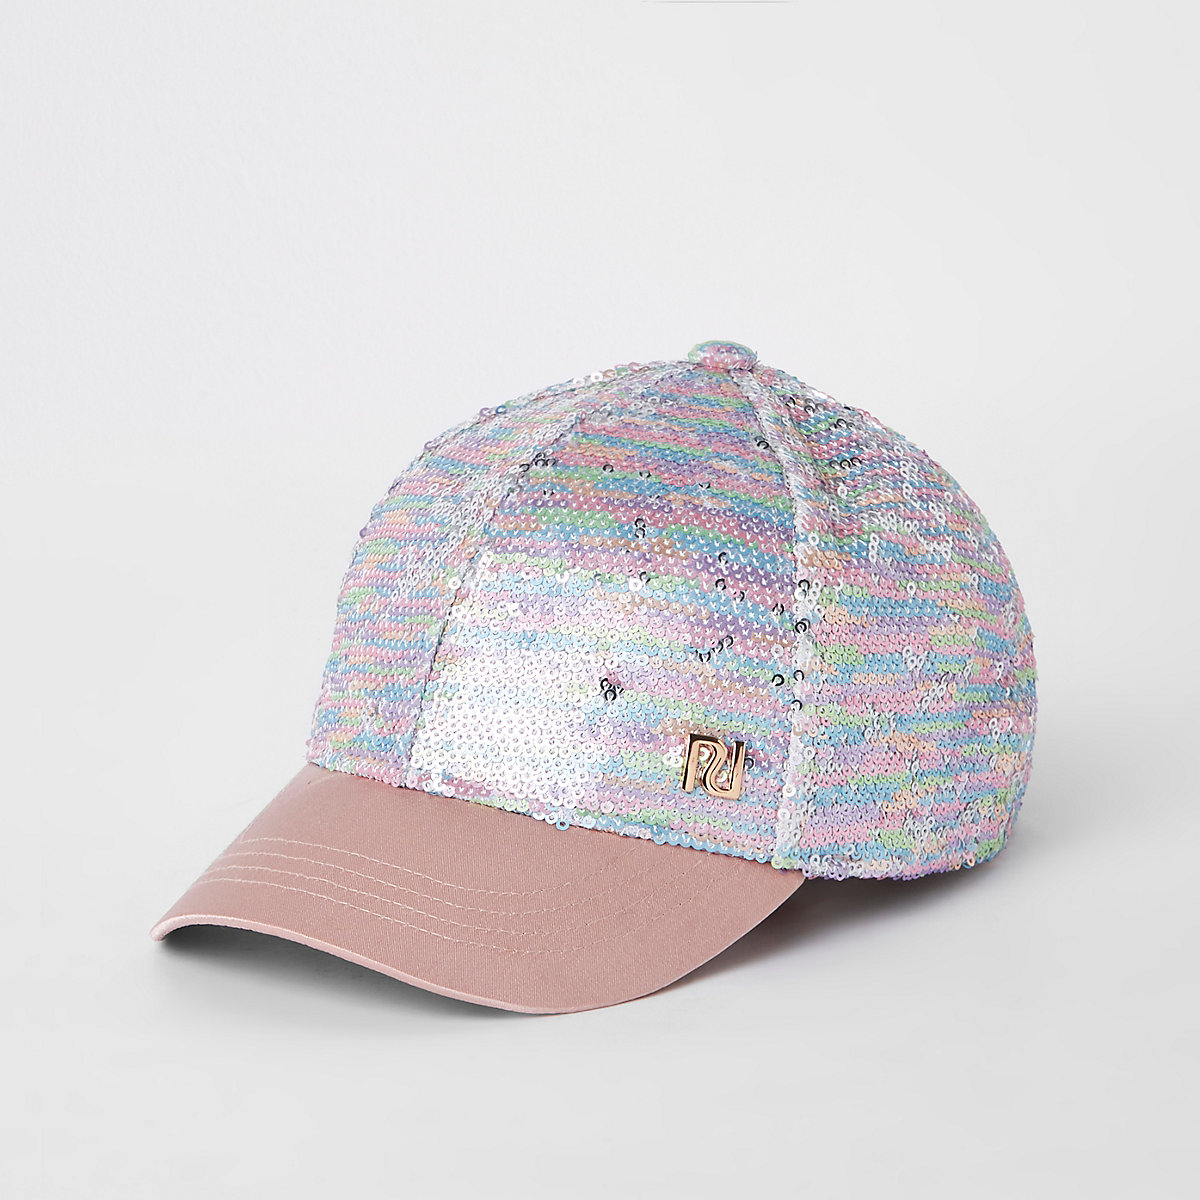 Girls pink sequin cap - Hats - Accessories - girls 2dd7a908dda4